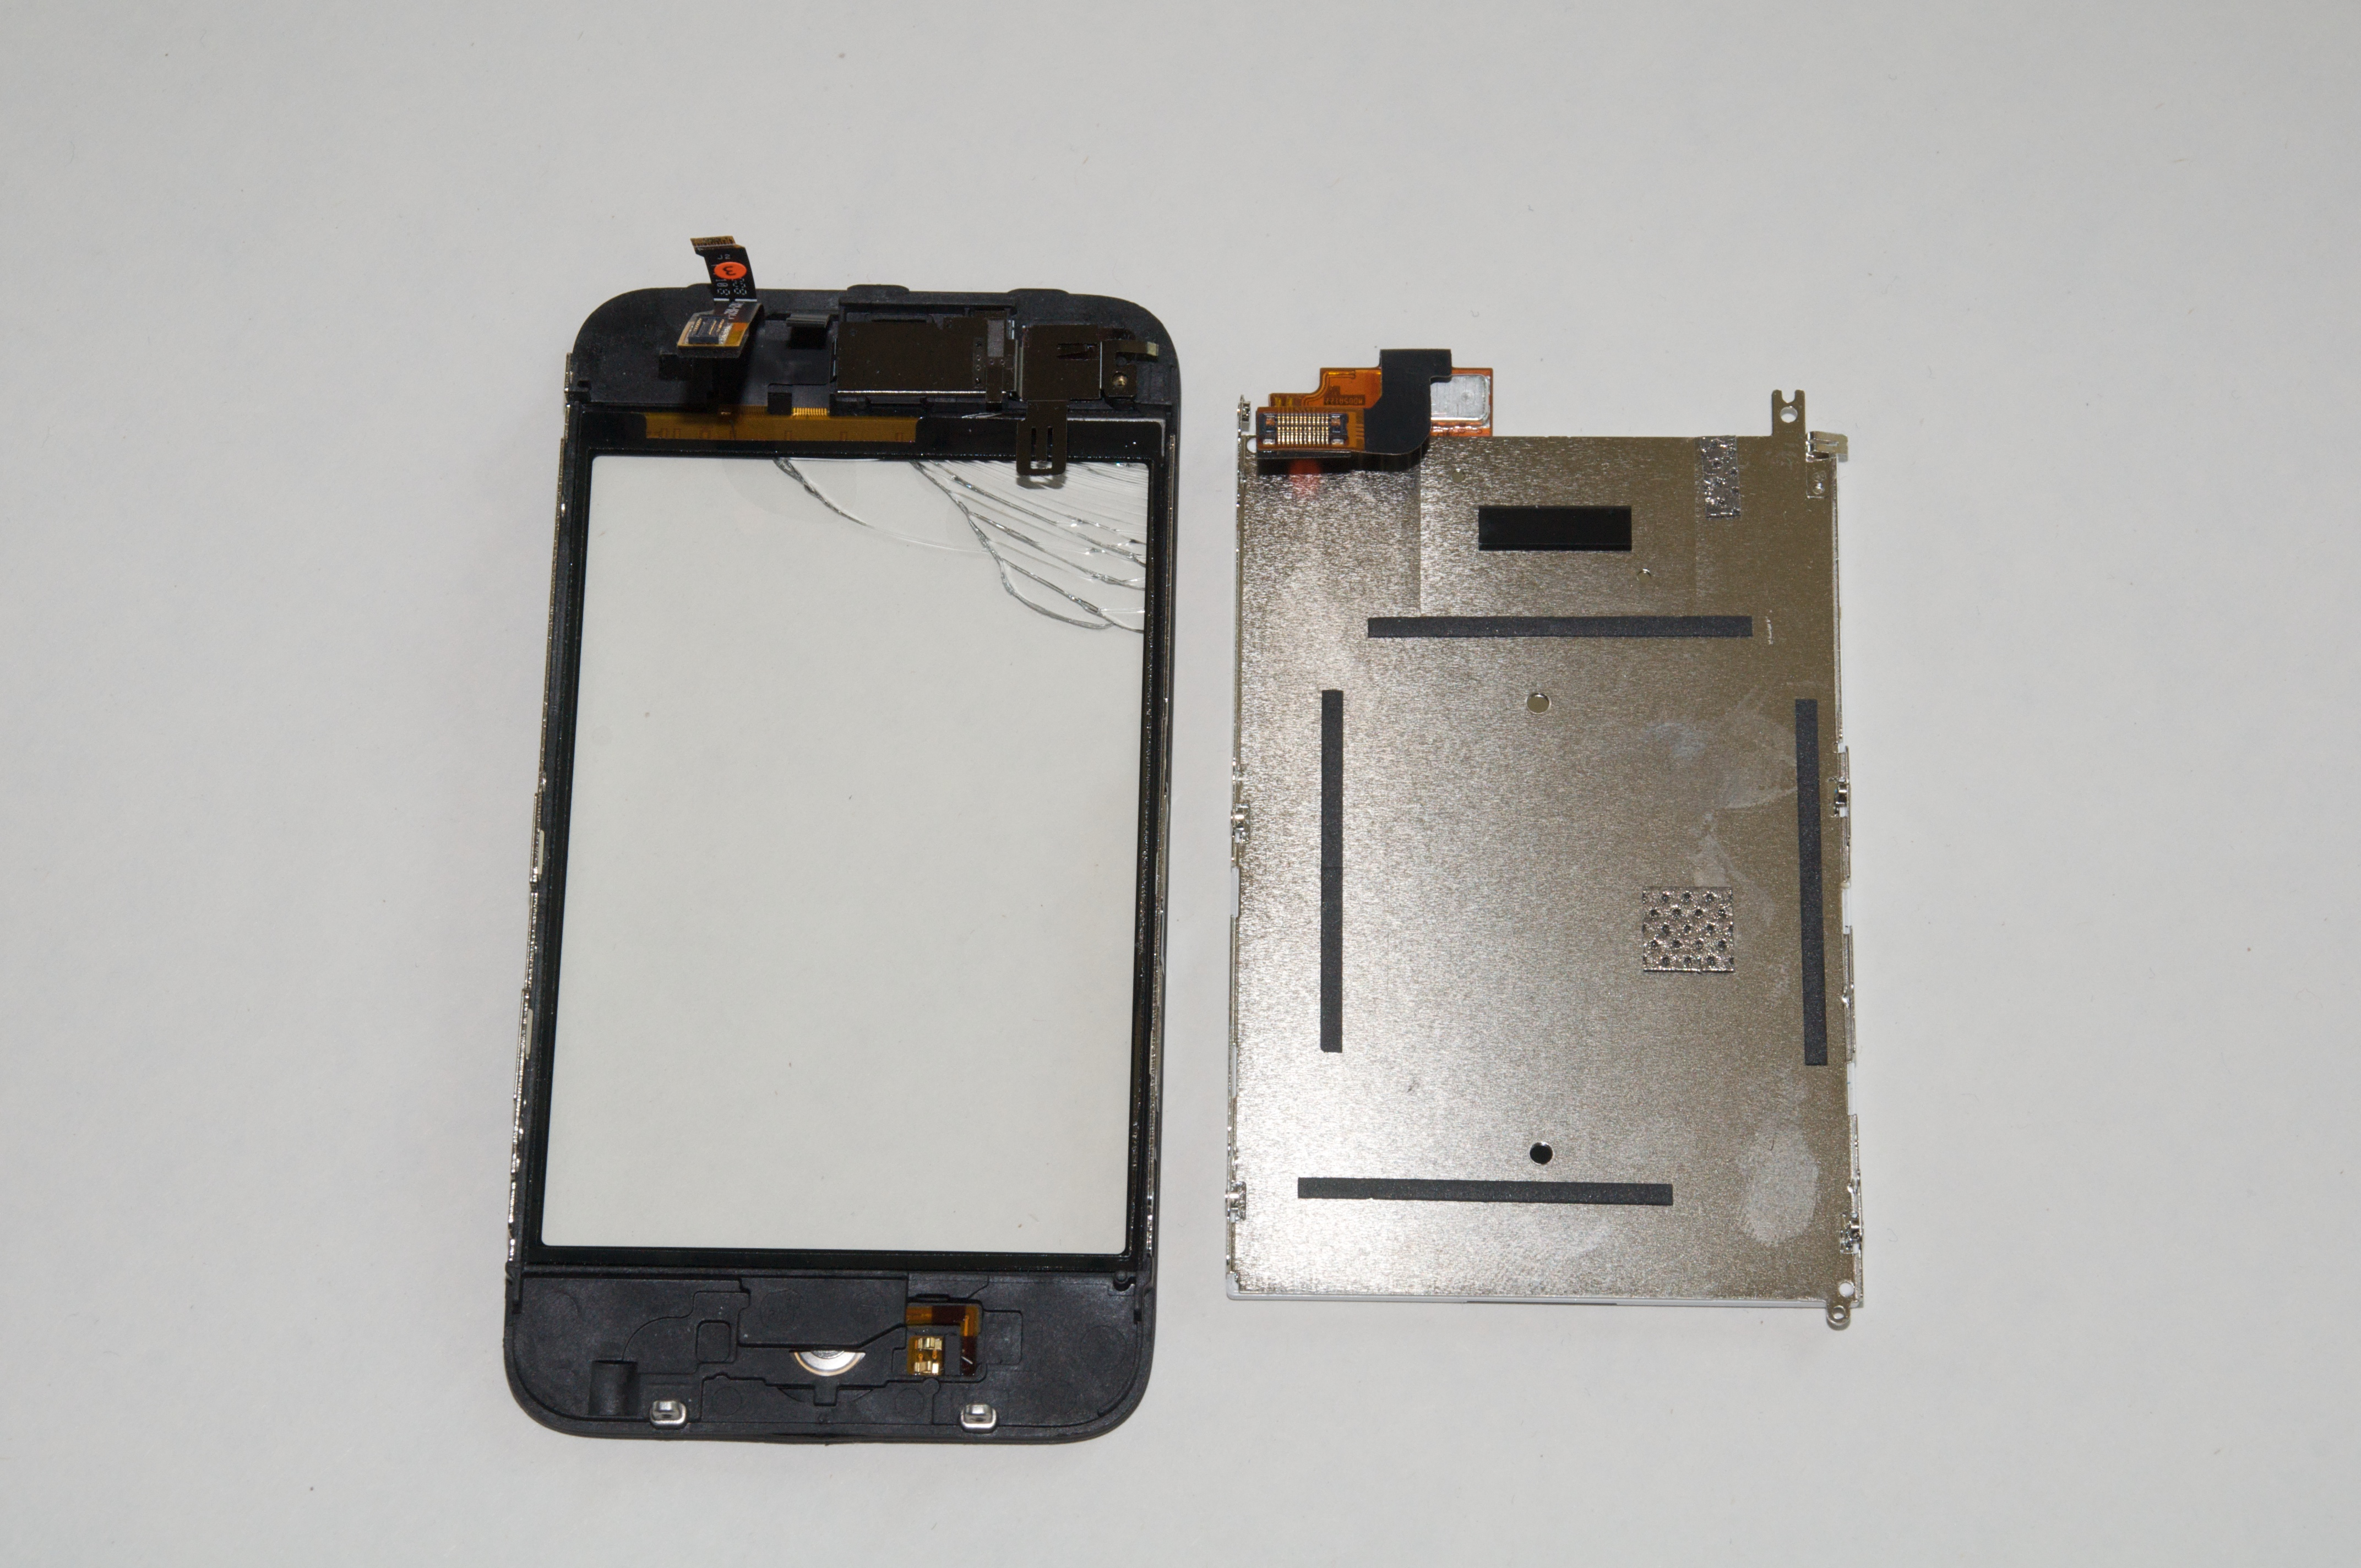 How To Replace A Cracked Iphone 3g Screen Tidbits